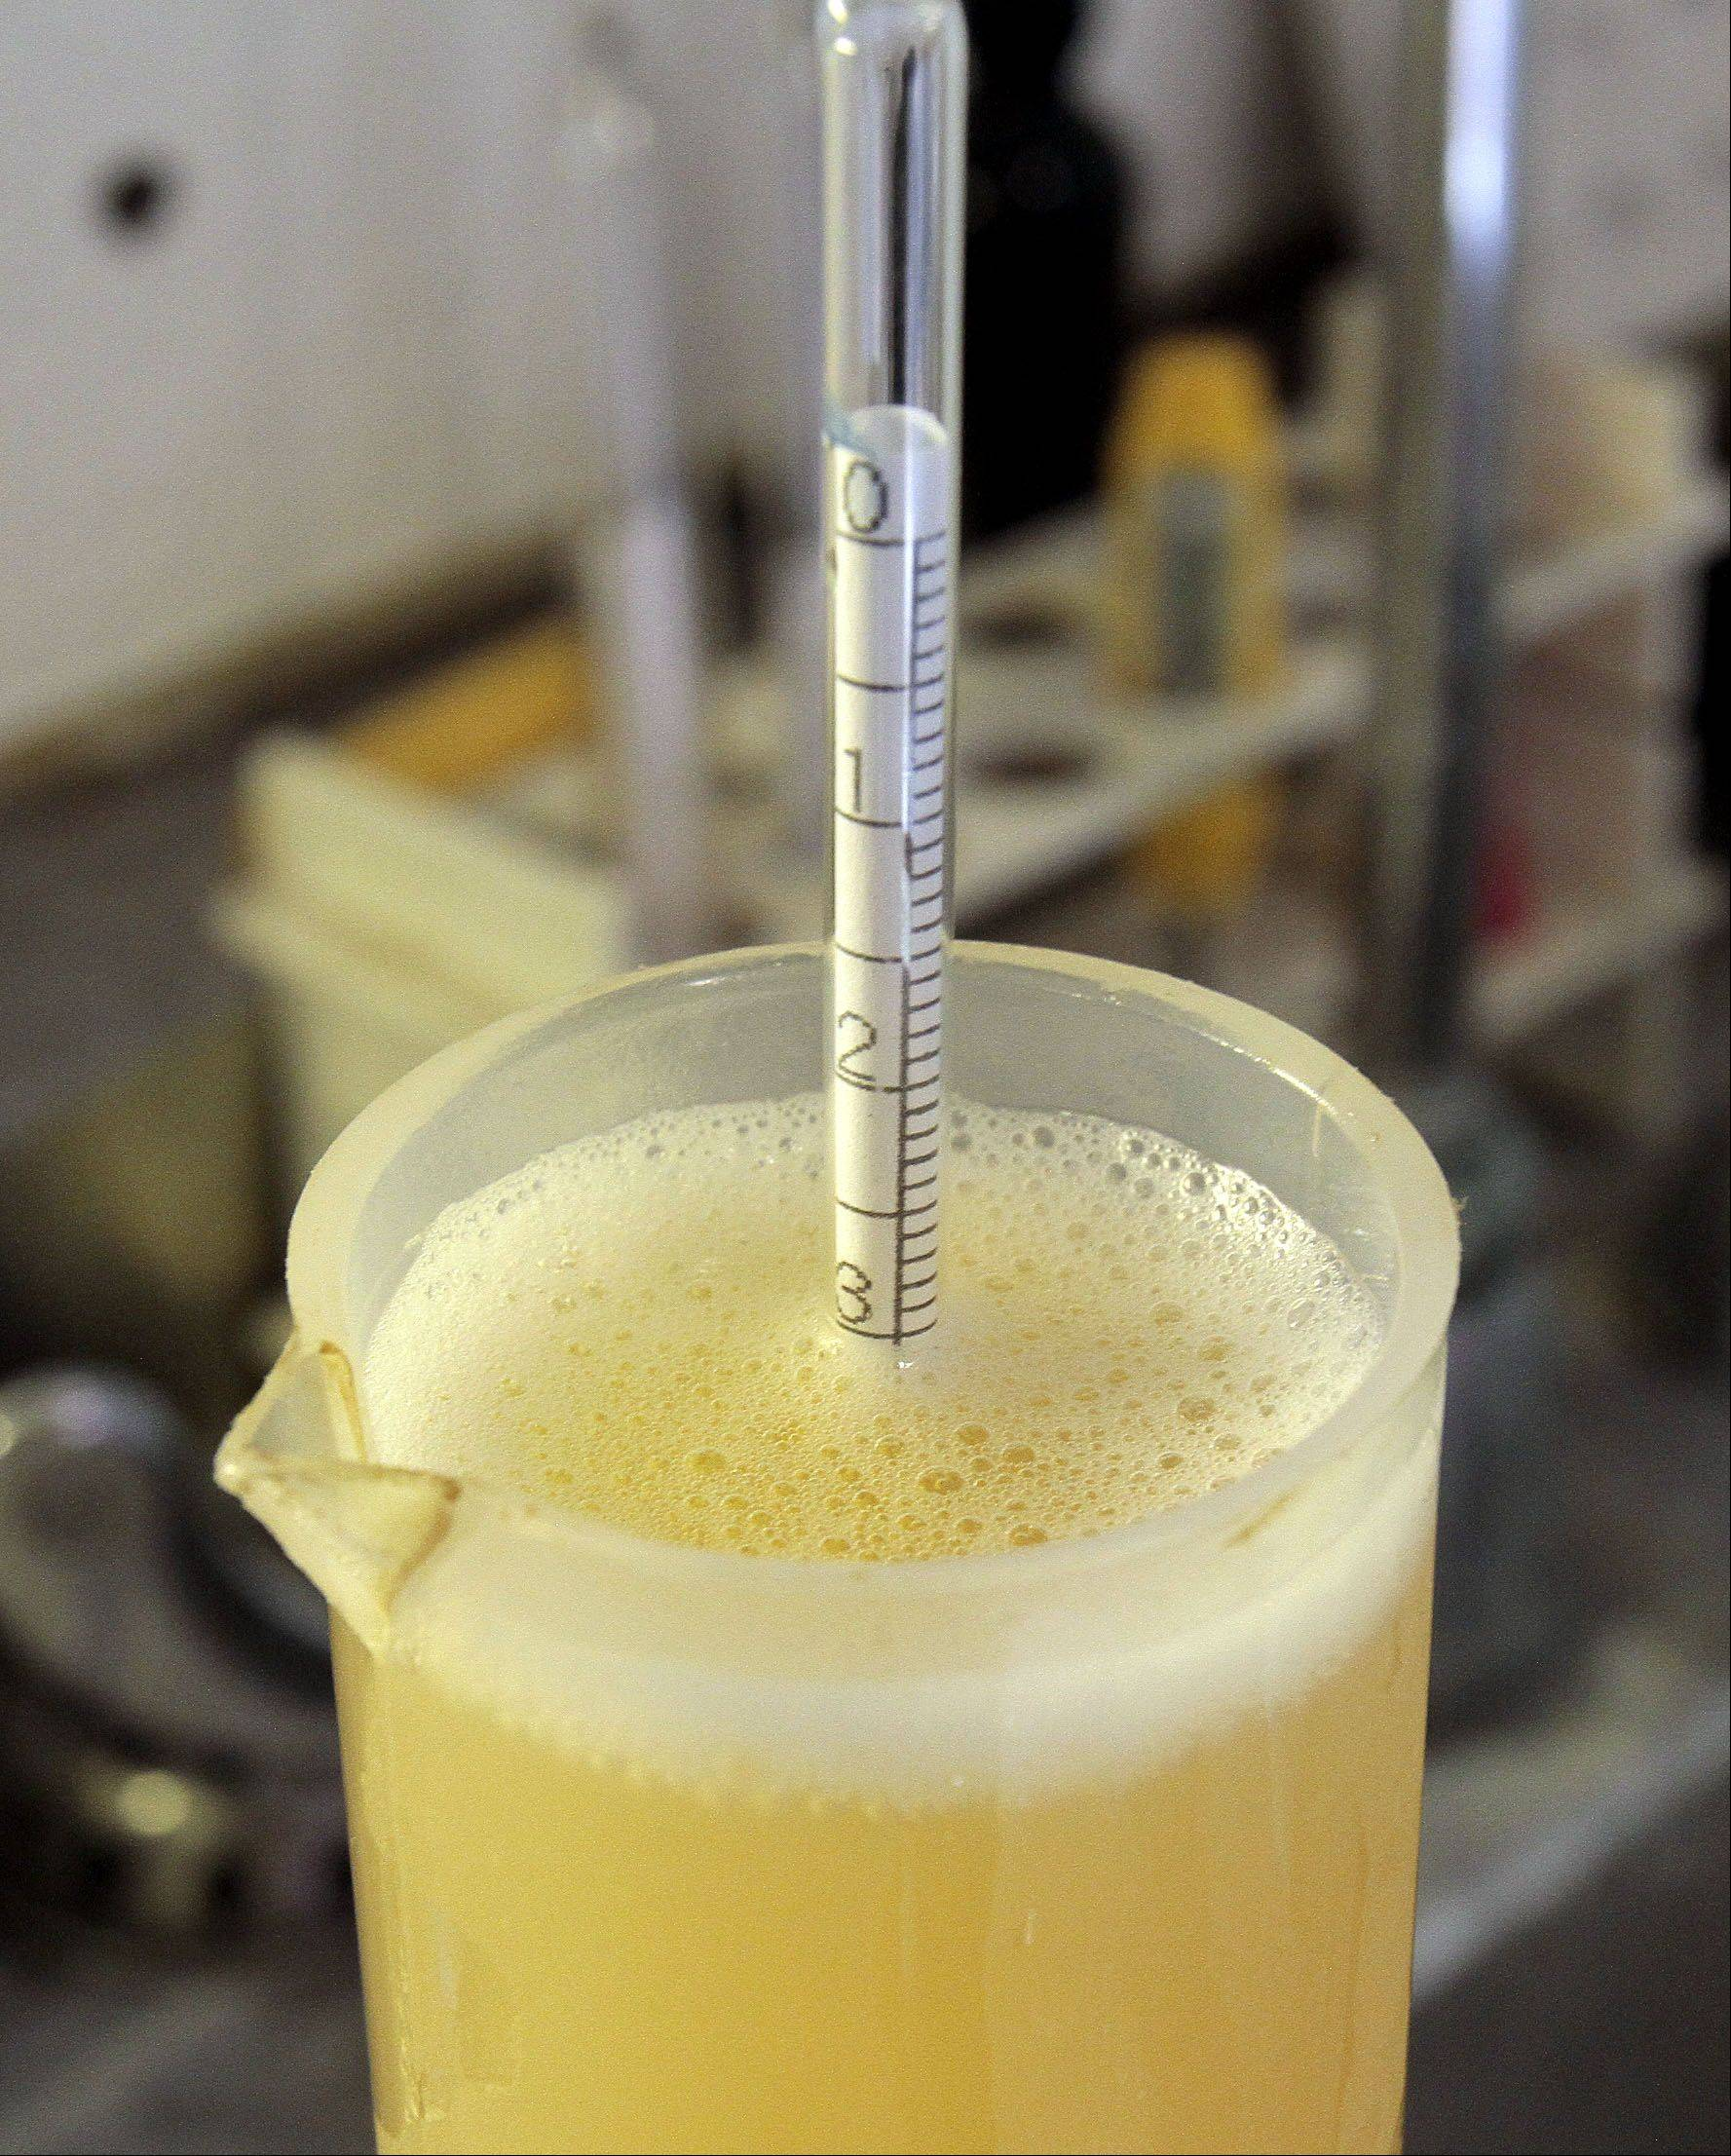 Alcohol content is checked with a bobber on a recent batch of beer.